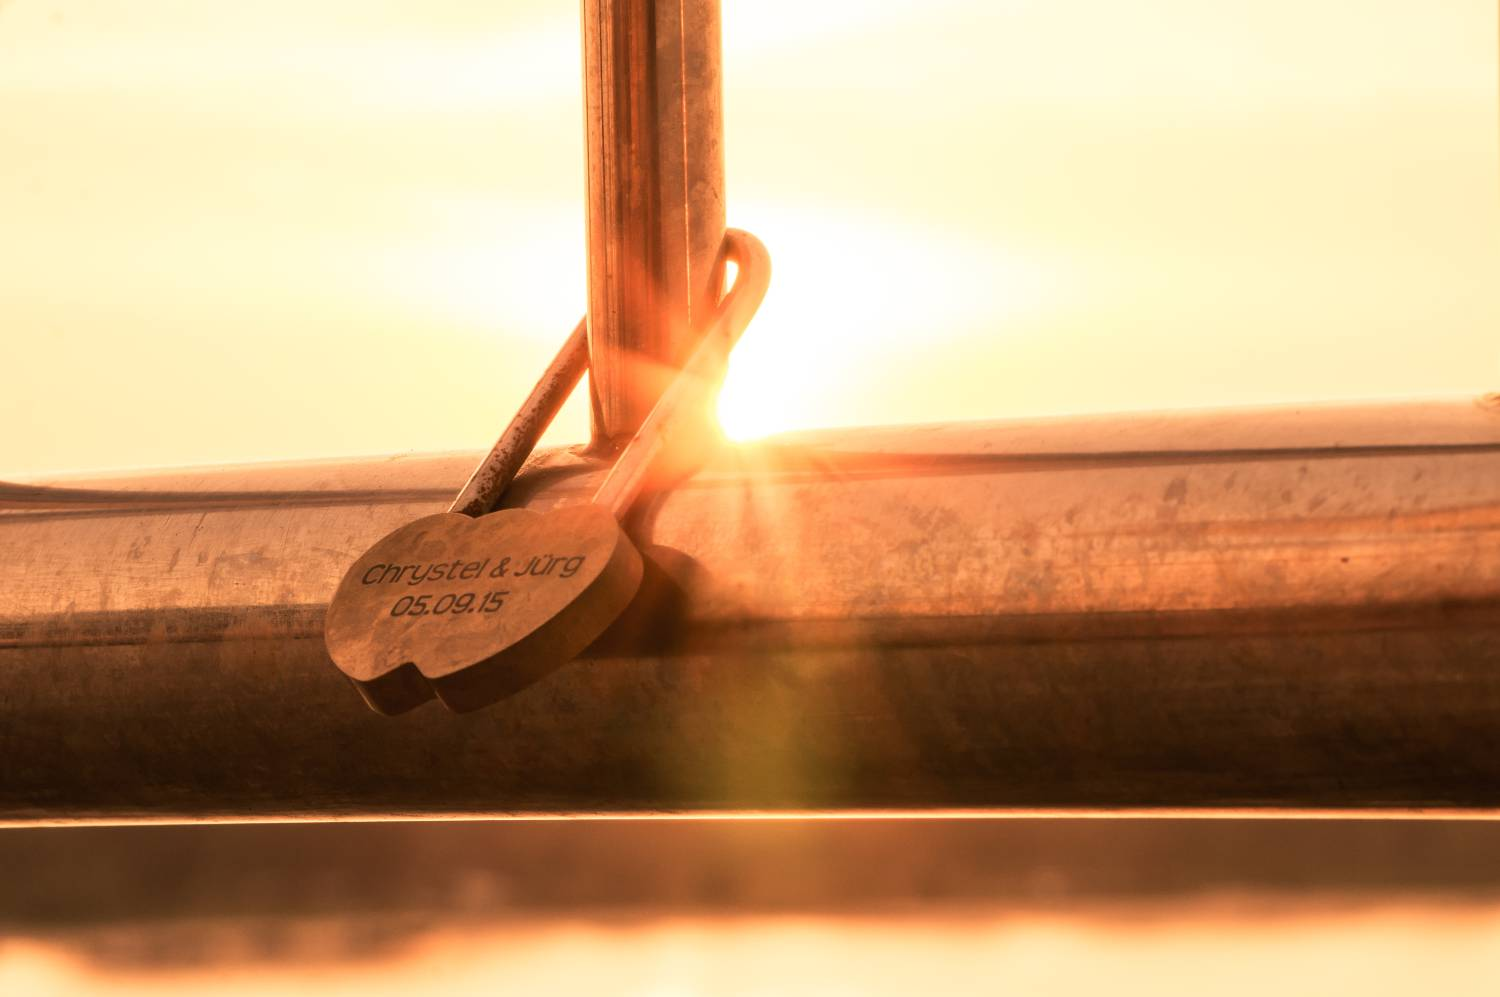 A lock on the Sarasin bridge with sunset in the background